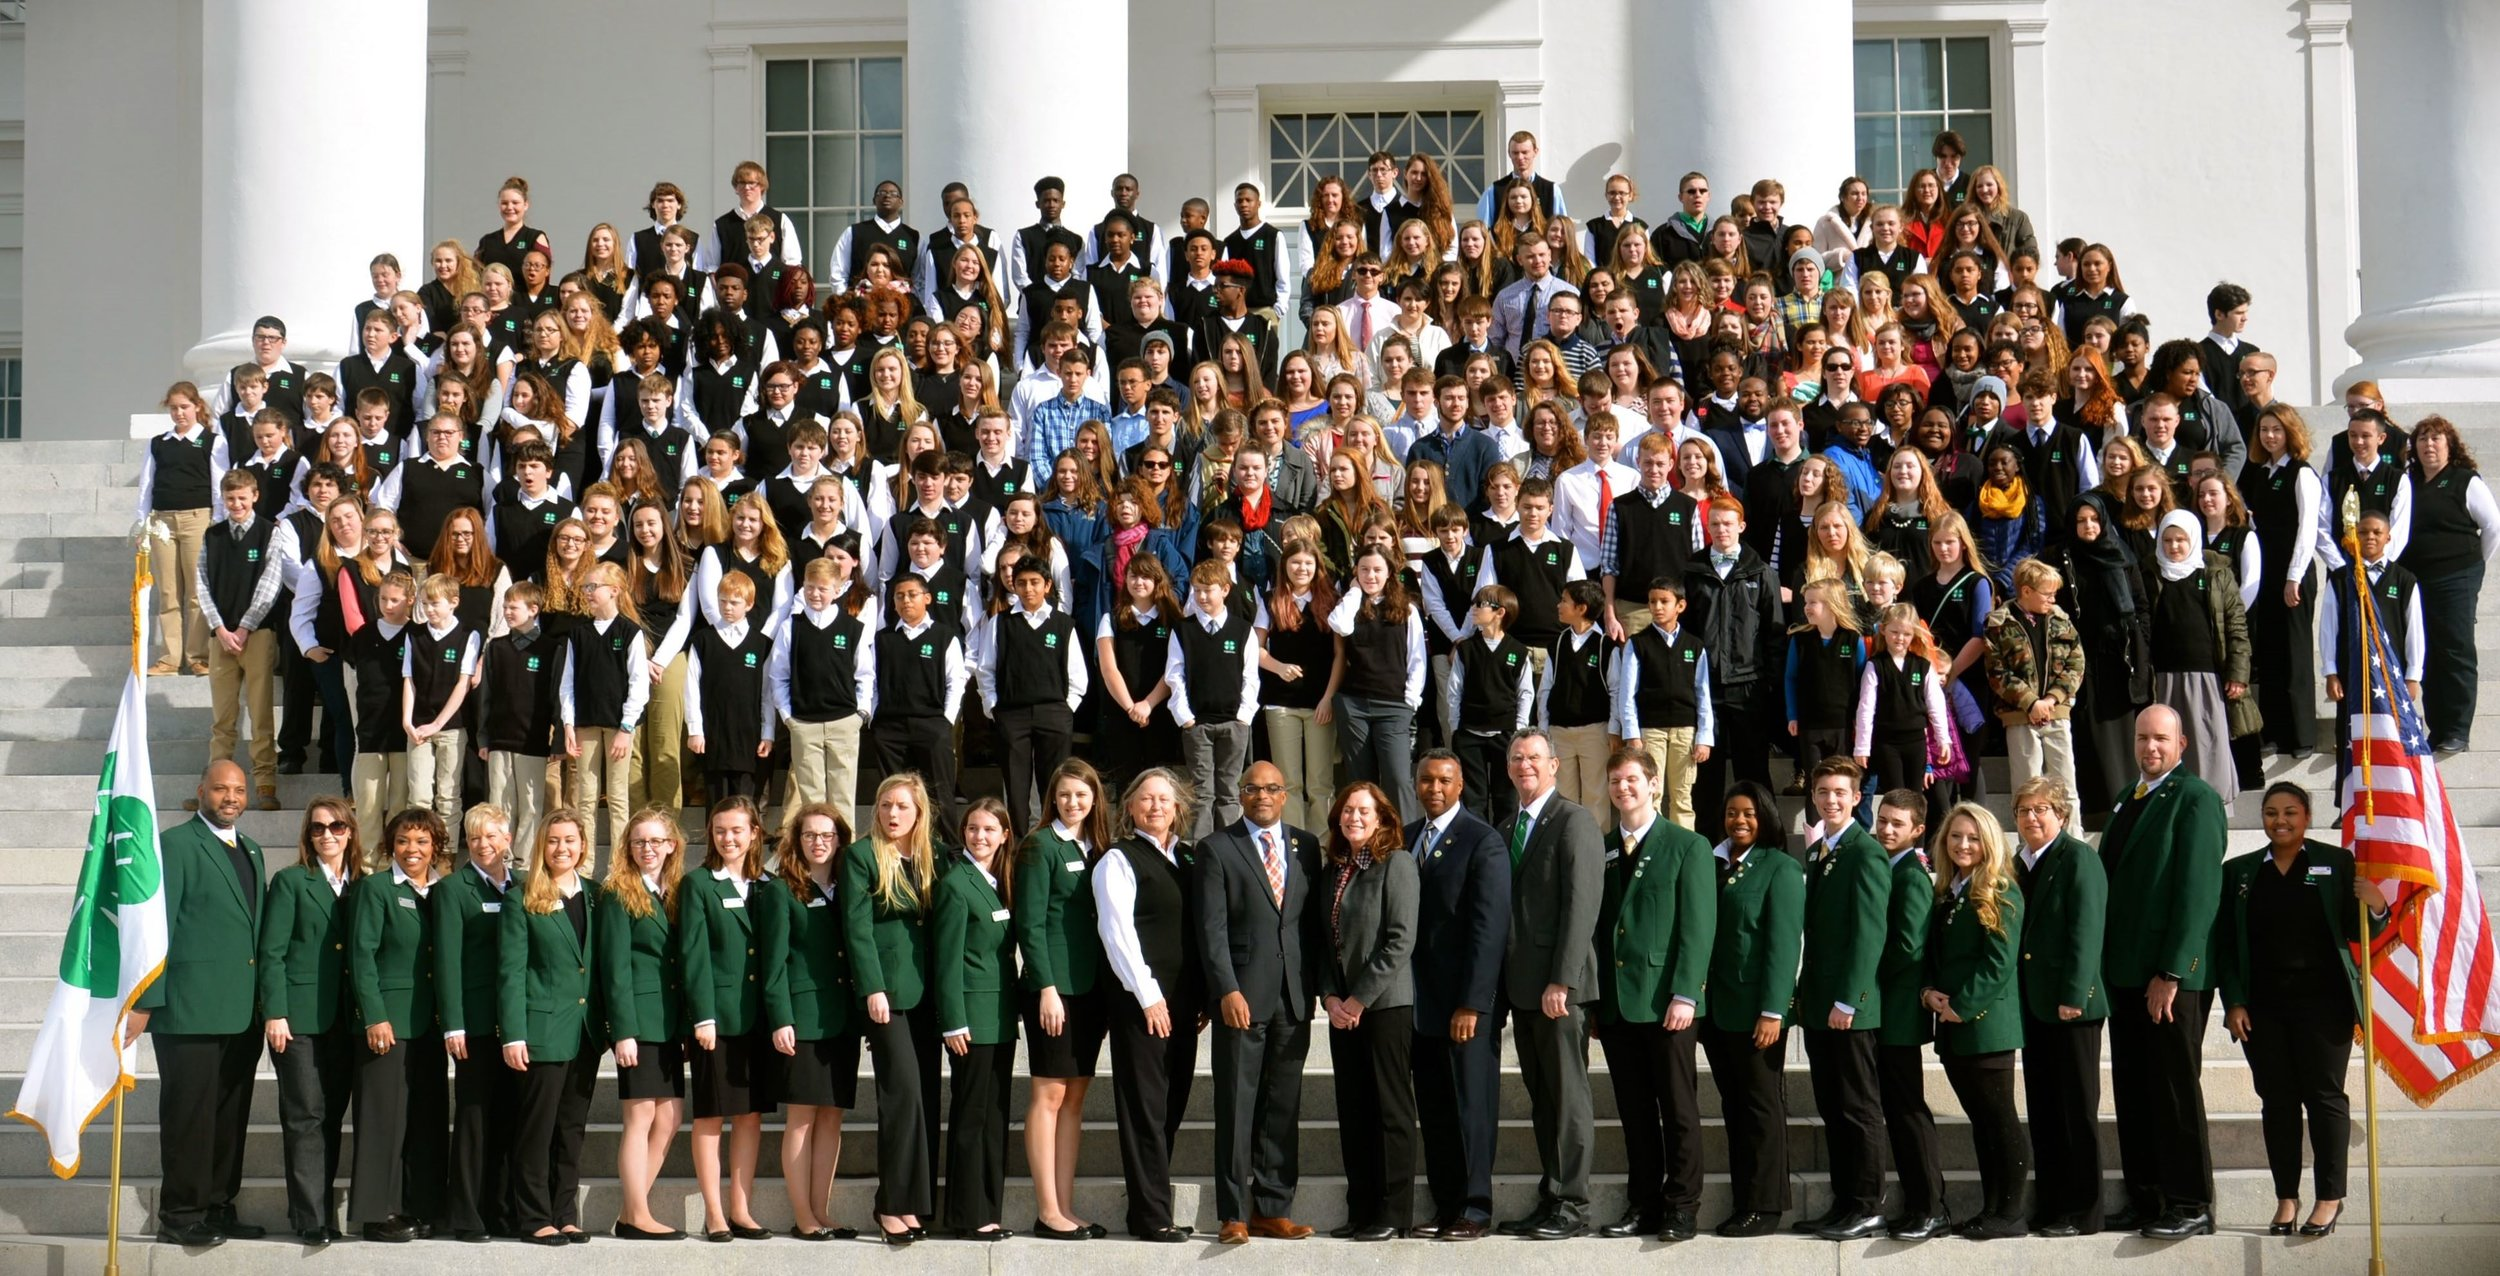 4-H Day at the Capital 2017